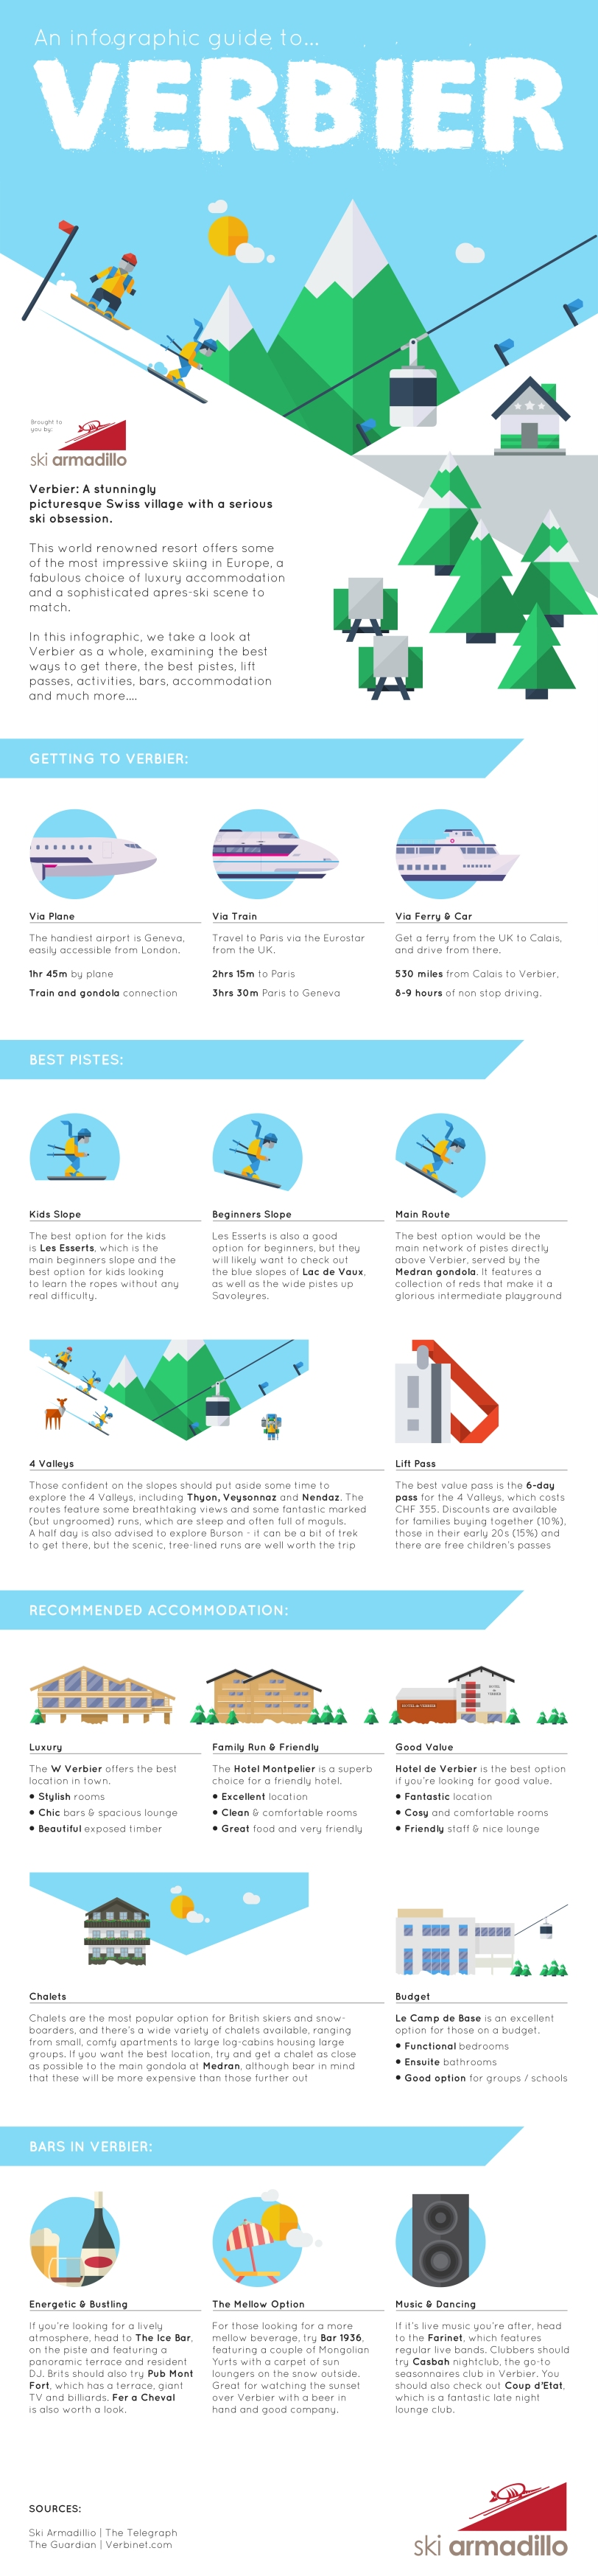 An Infographic Guide to Verbier by Ski Armadillo